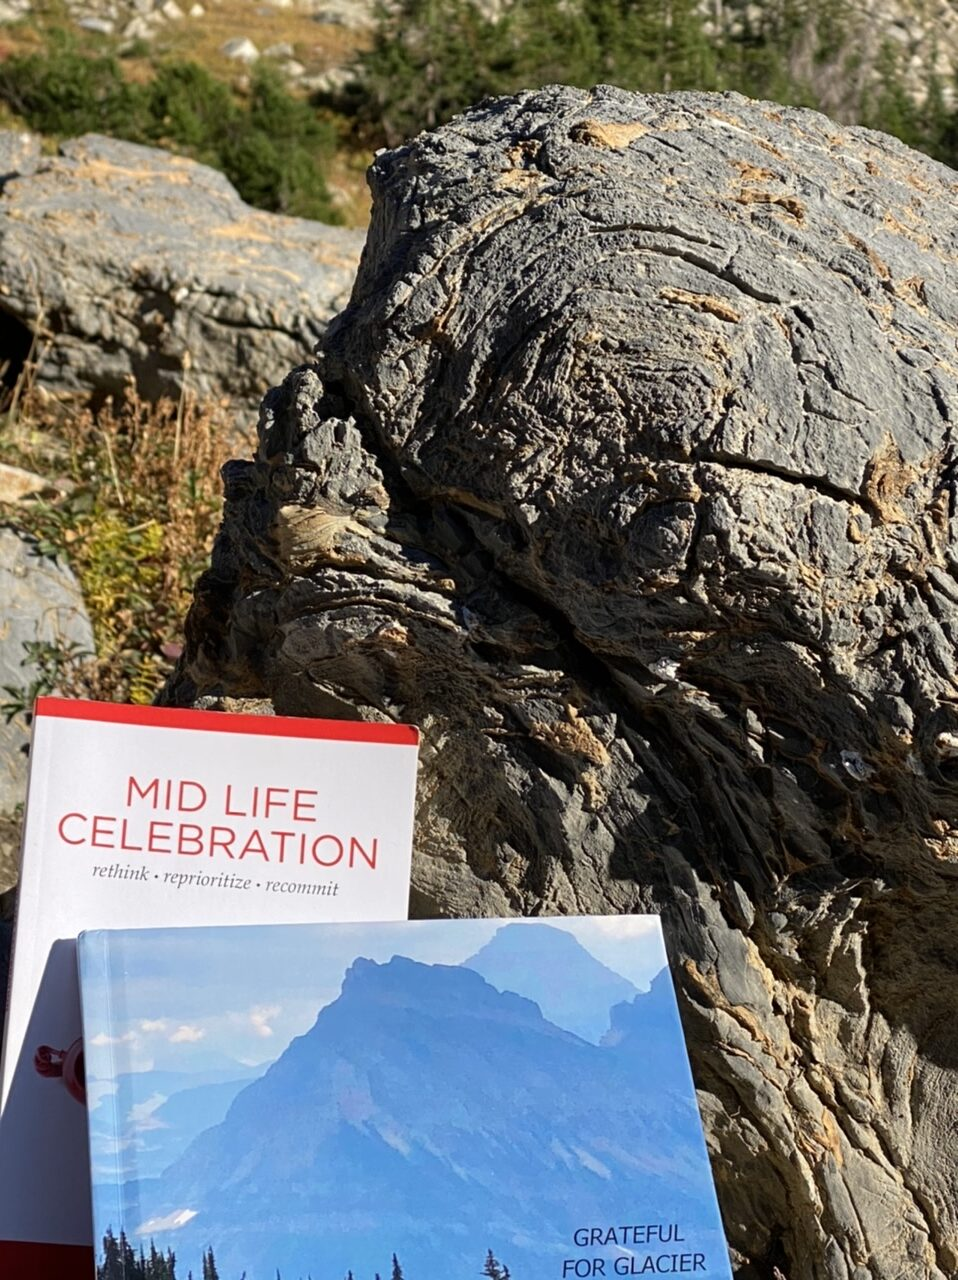 Two books, one entitled mid life celebration and the other called grateful for glacier near a fossilized rock